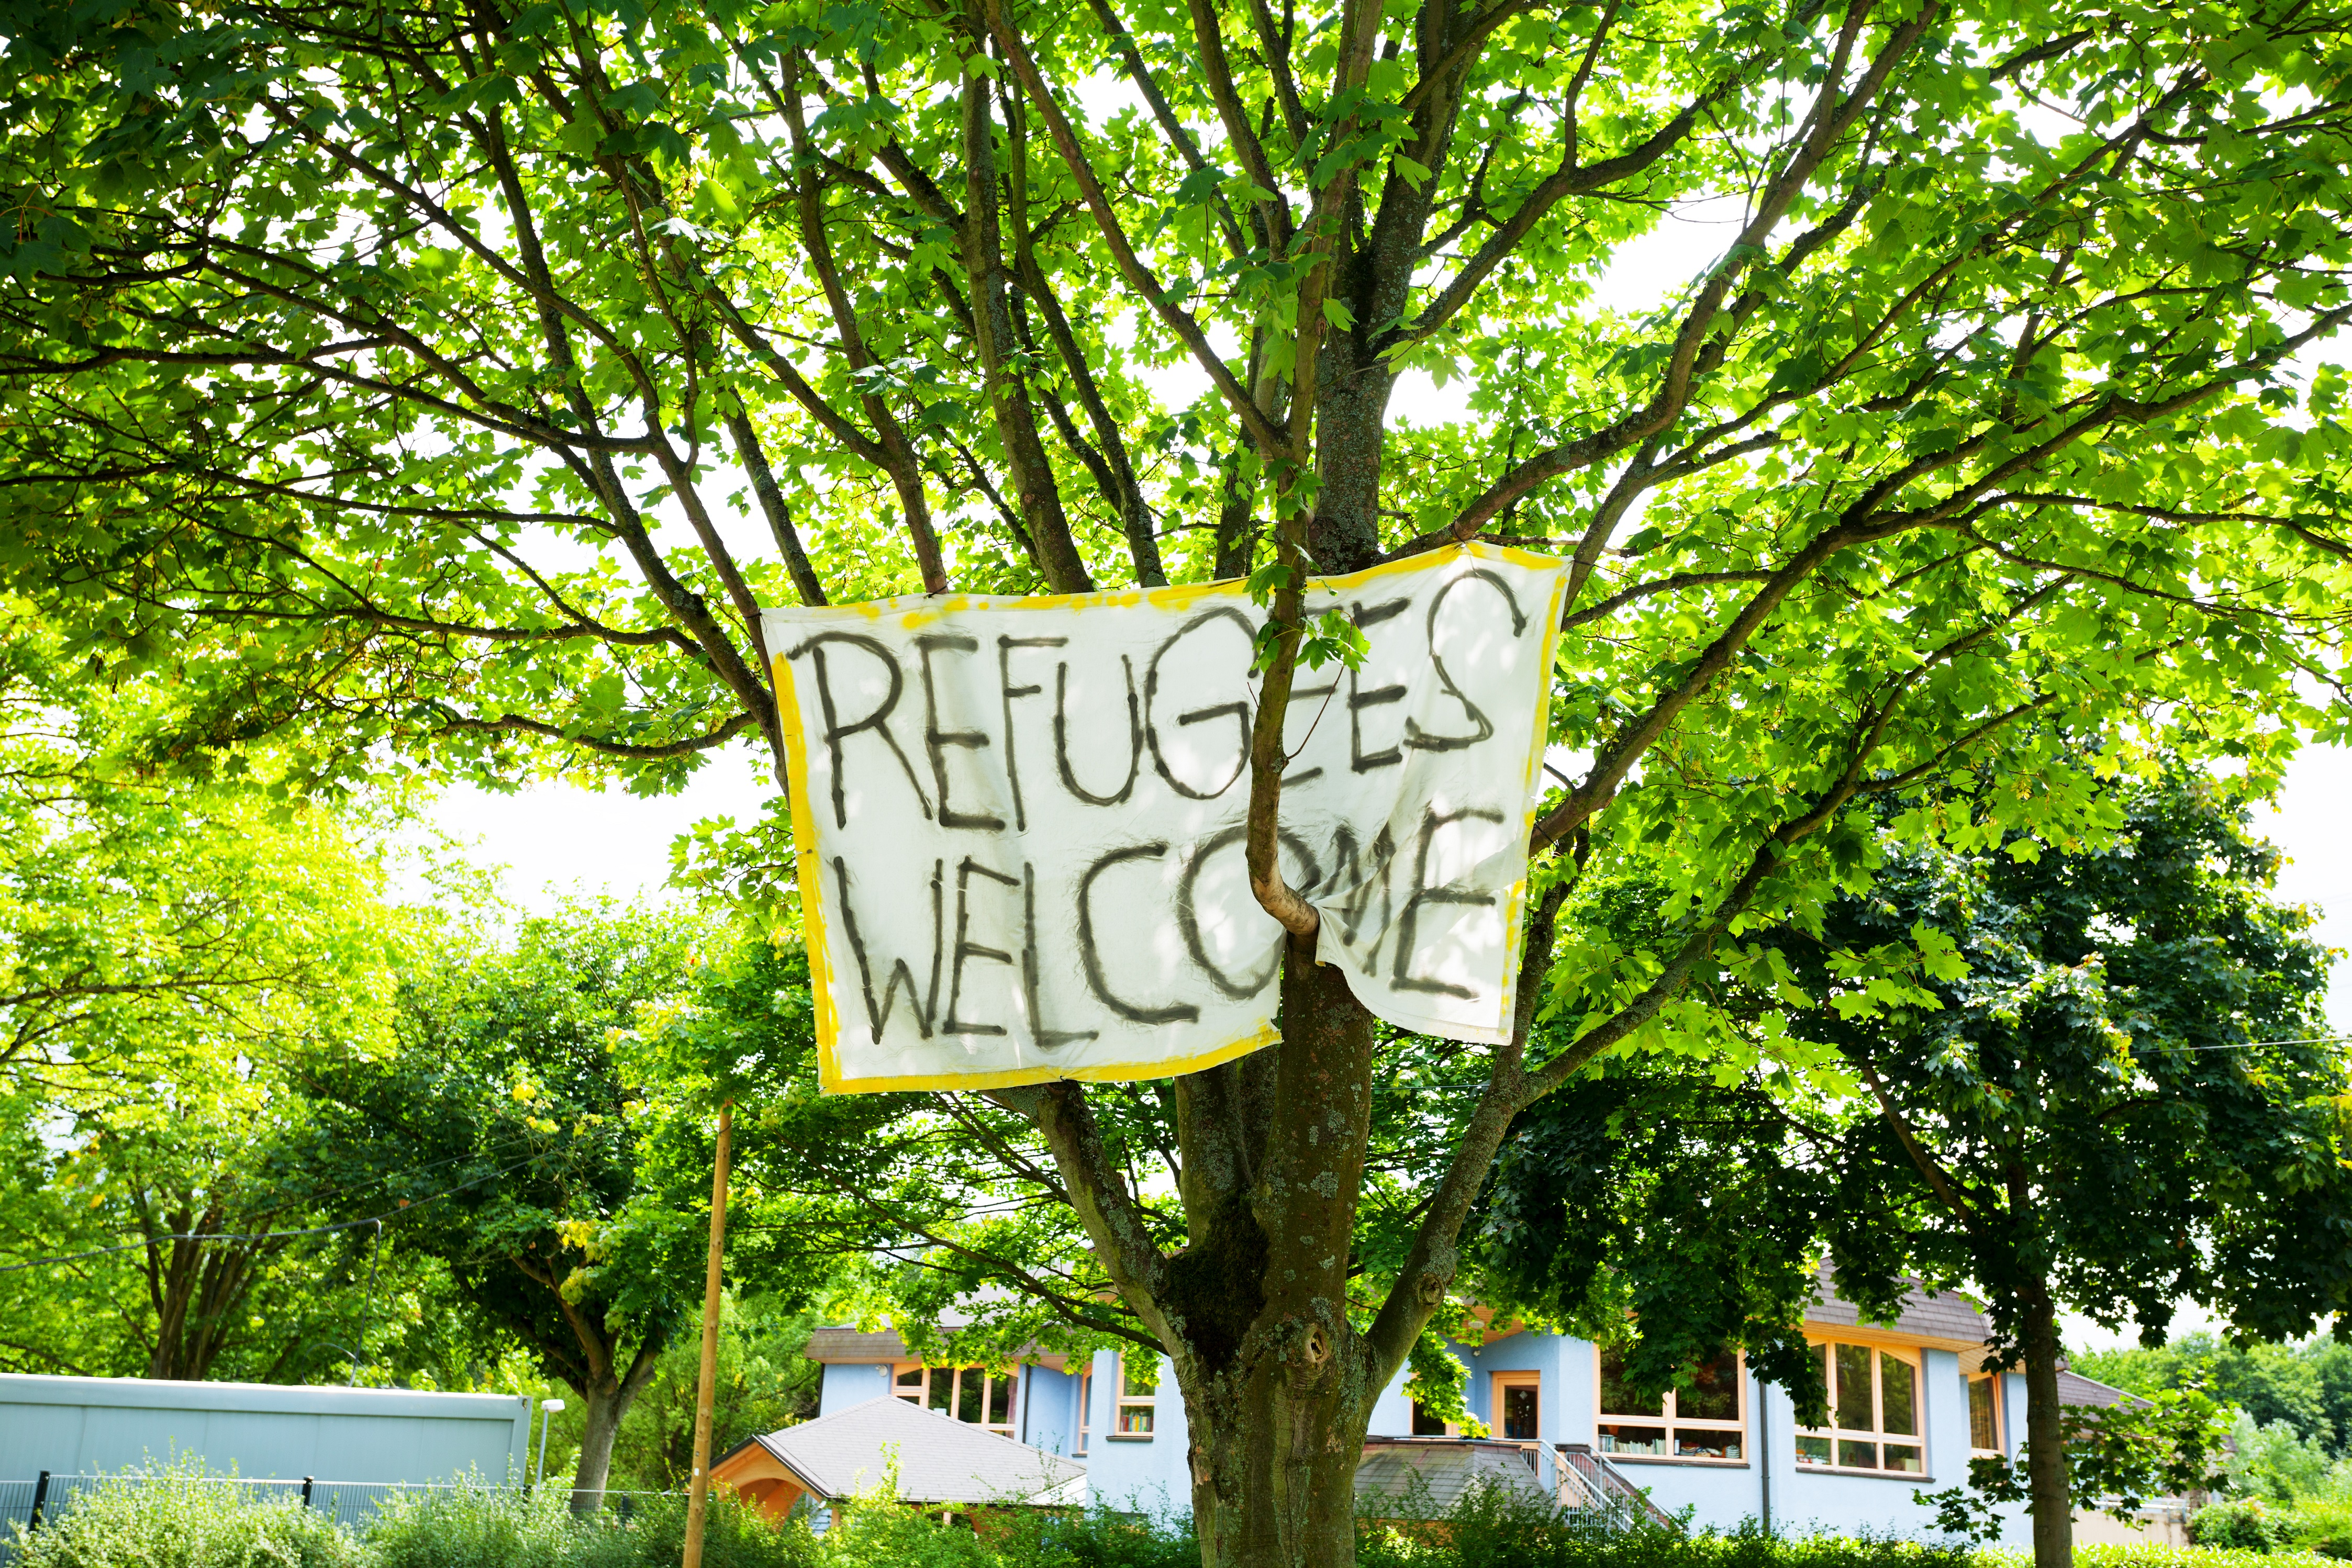 Refugees Welcome Banner in Dortmund, Germany. Photo/Credit: Michael Luhrenberg/iStock.com